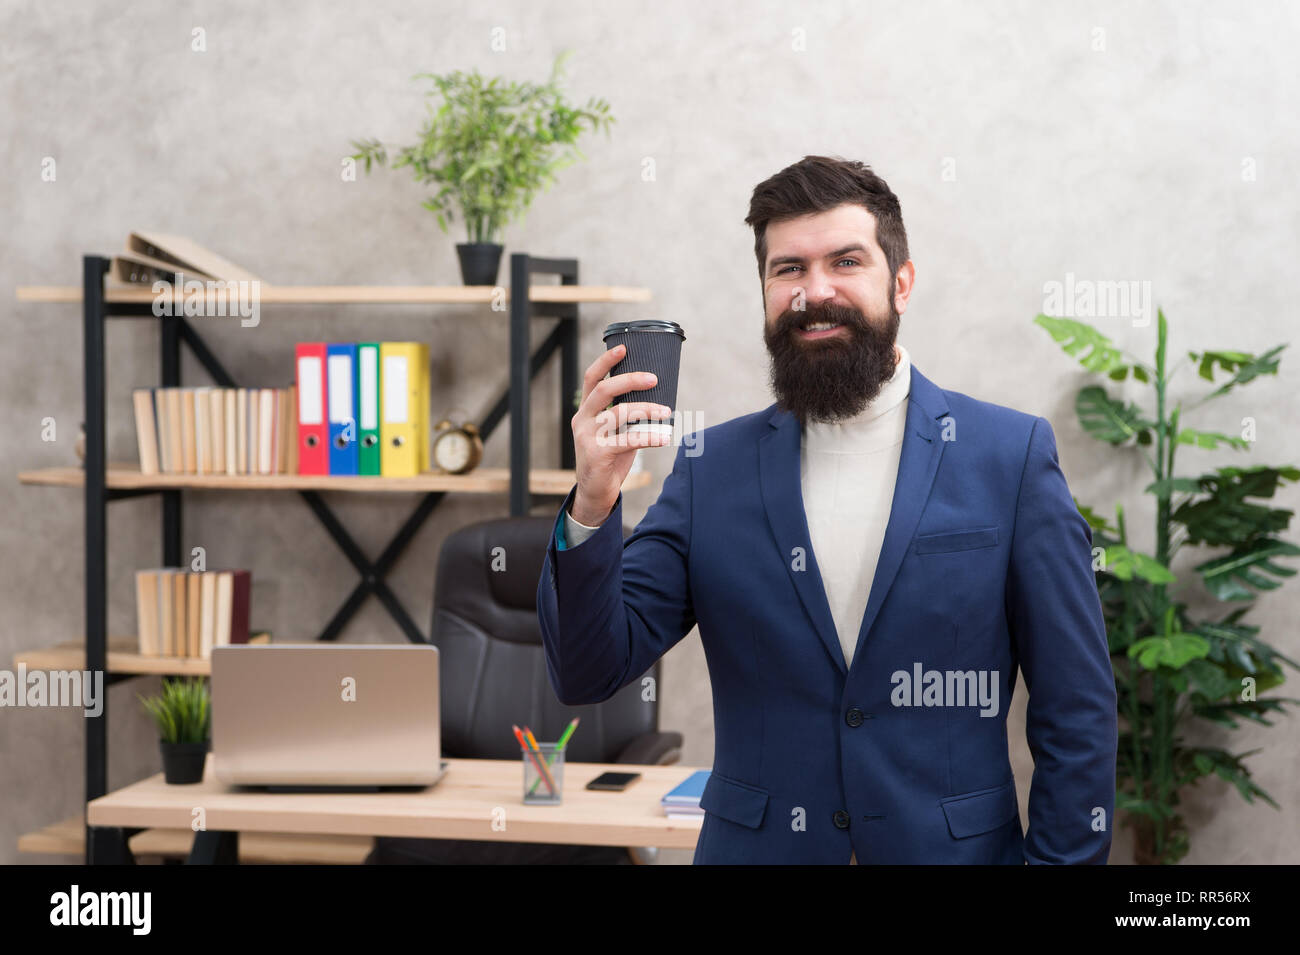 Got idea in his hand. Searching for fresh idea. Businessman in formal outfit. Confident man use laptop. happy boss workplace. Coffee break. Bearded man in business office. inspired by new idea. - Stock Image